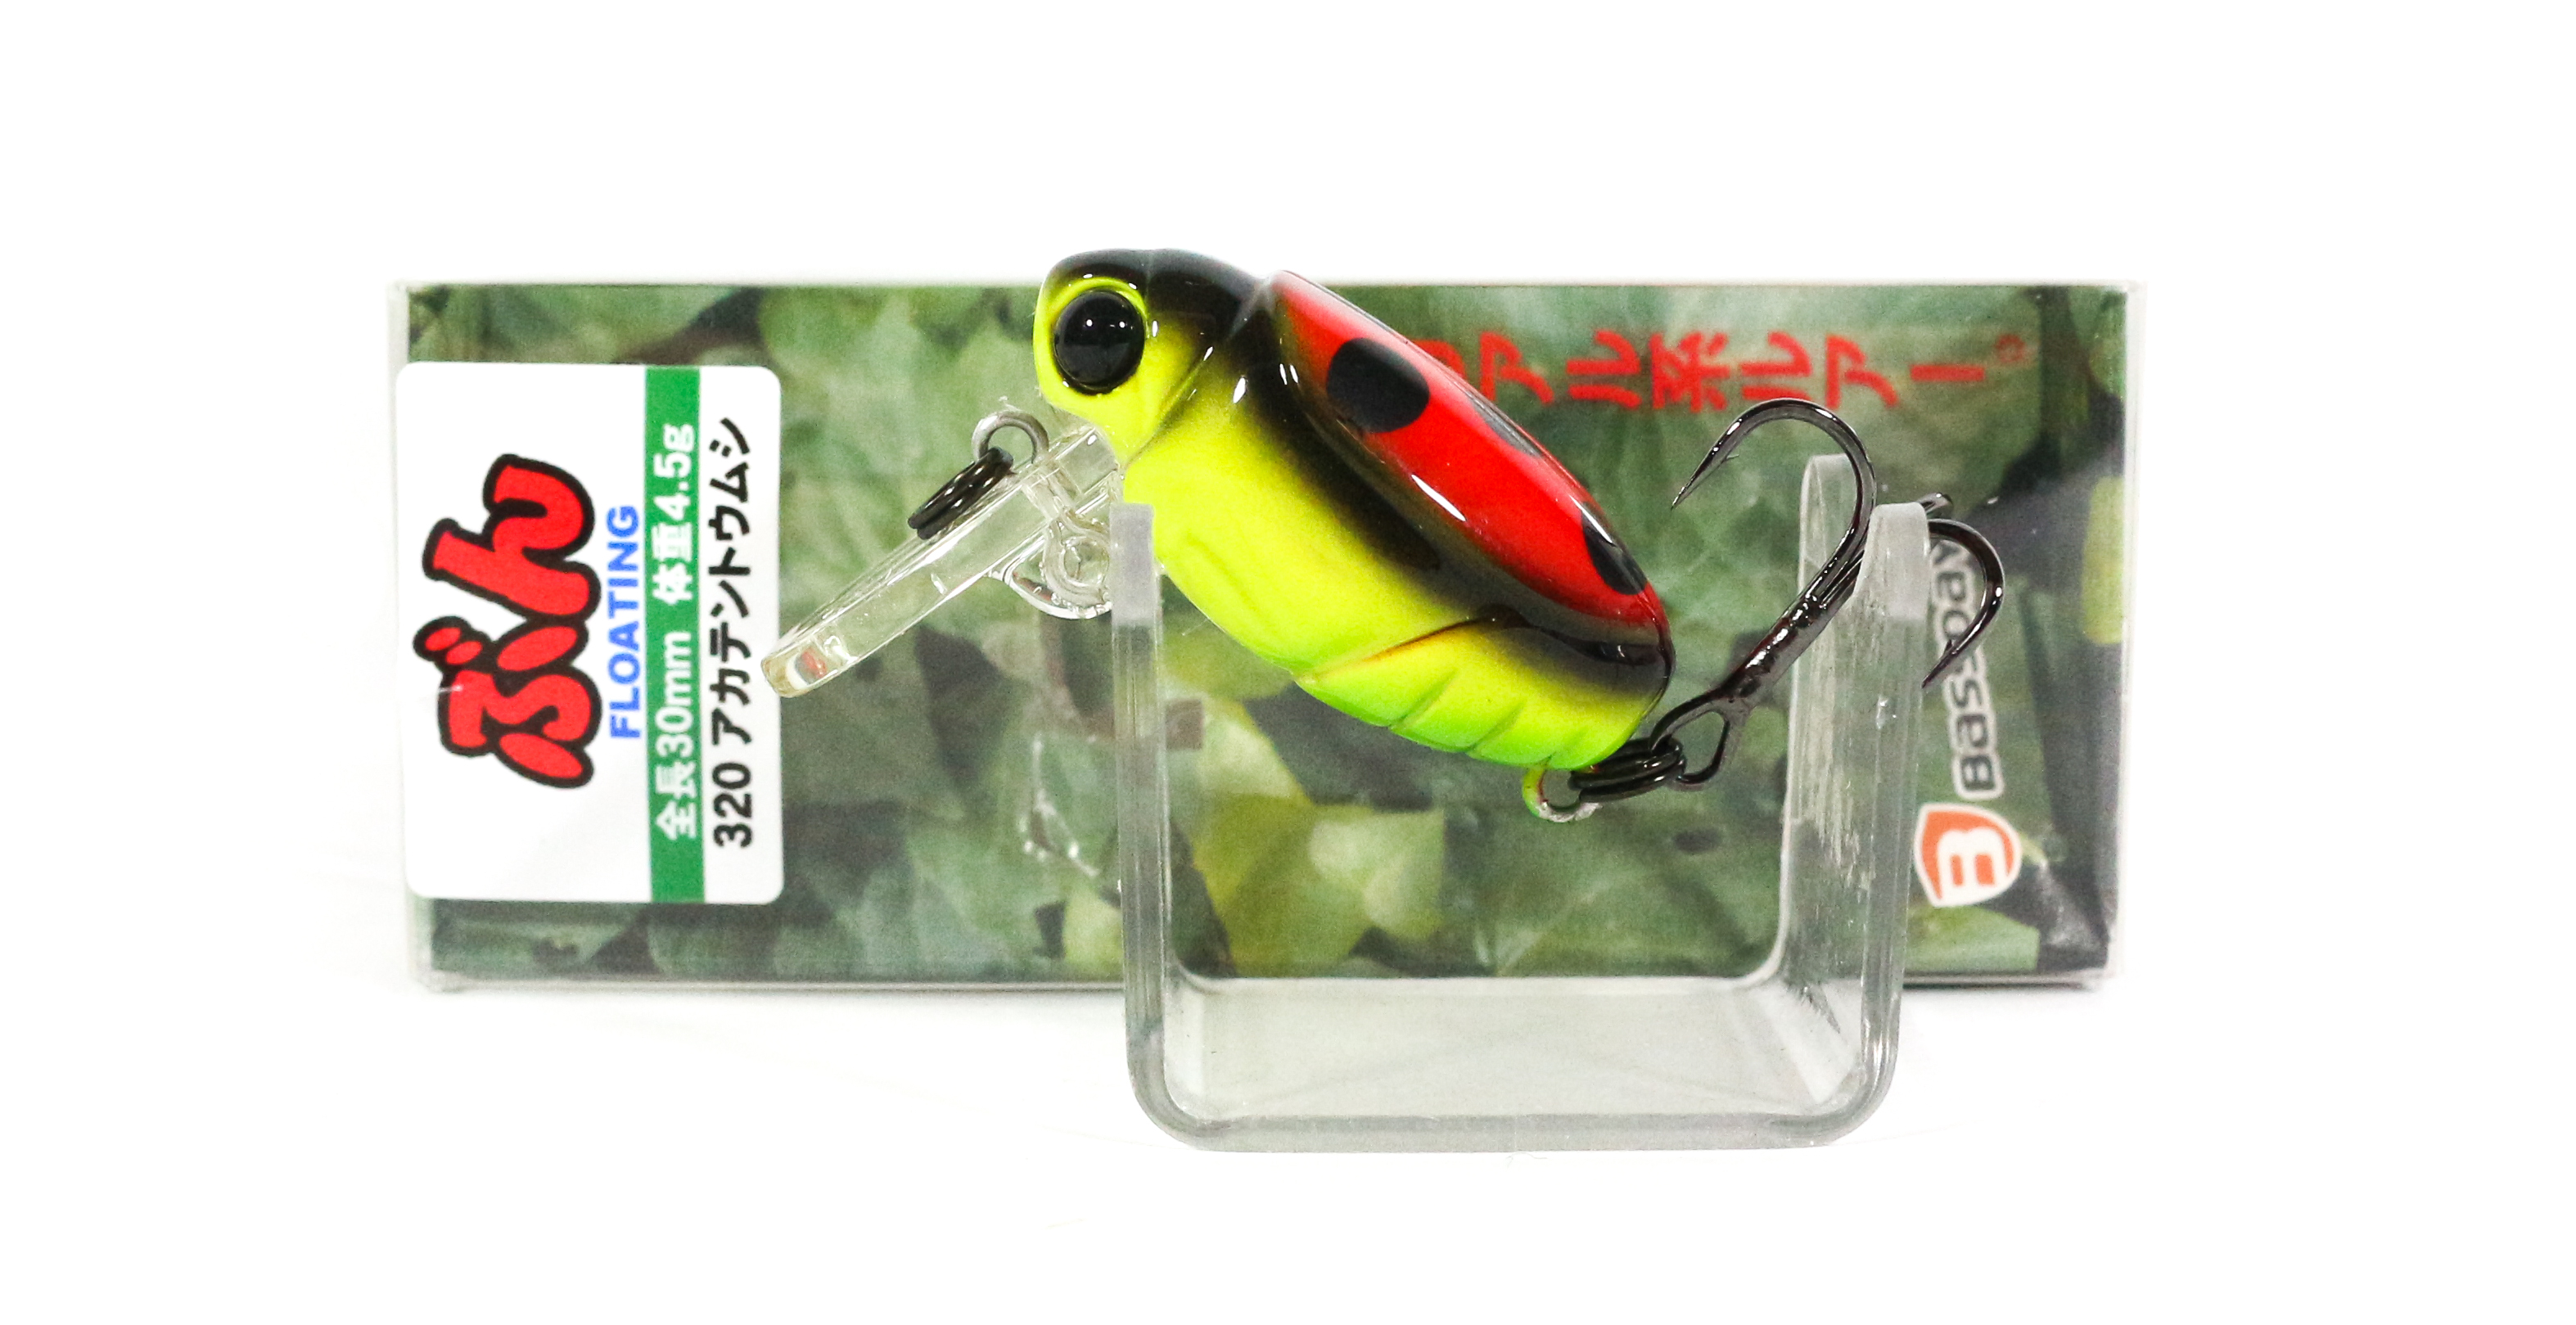 Bassday Beetle Bun 30F Floating Lure 4.5 grams 320 (3426)